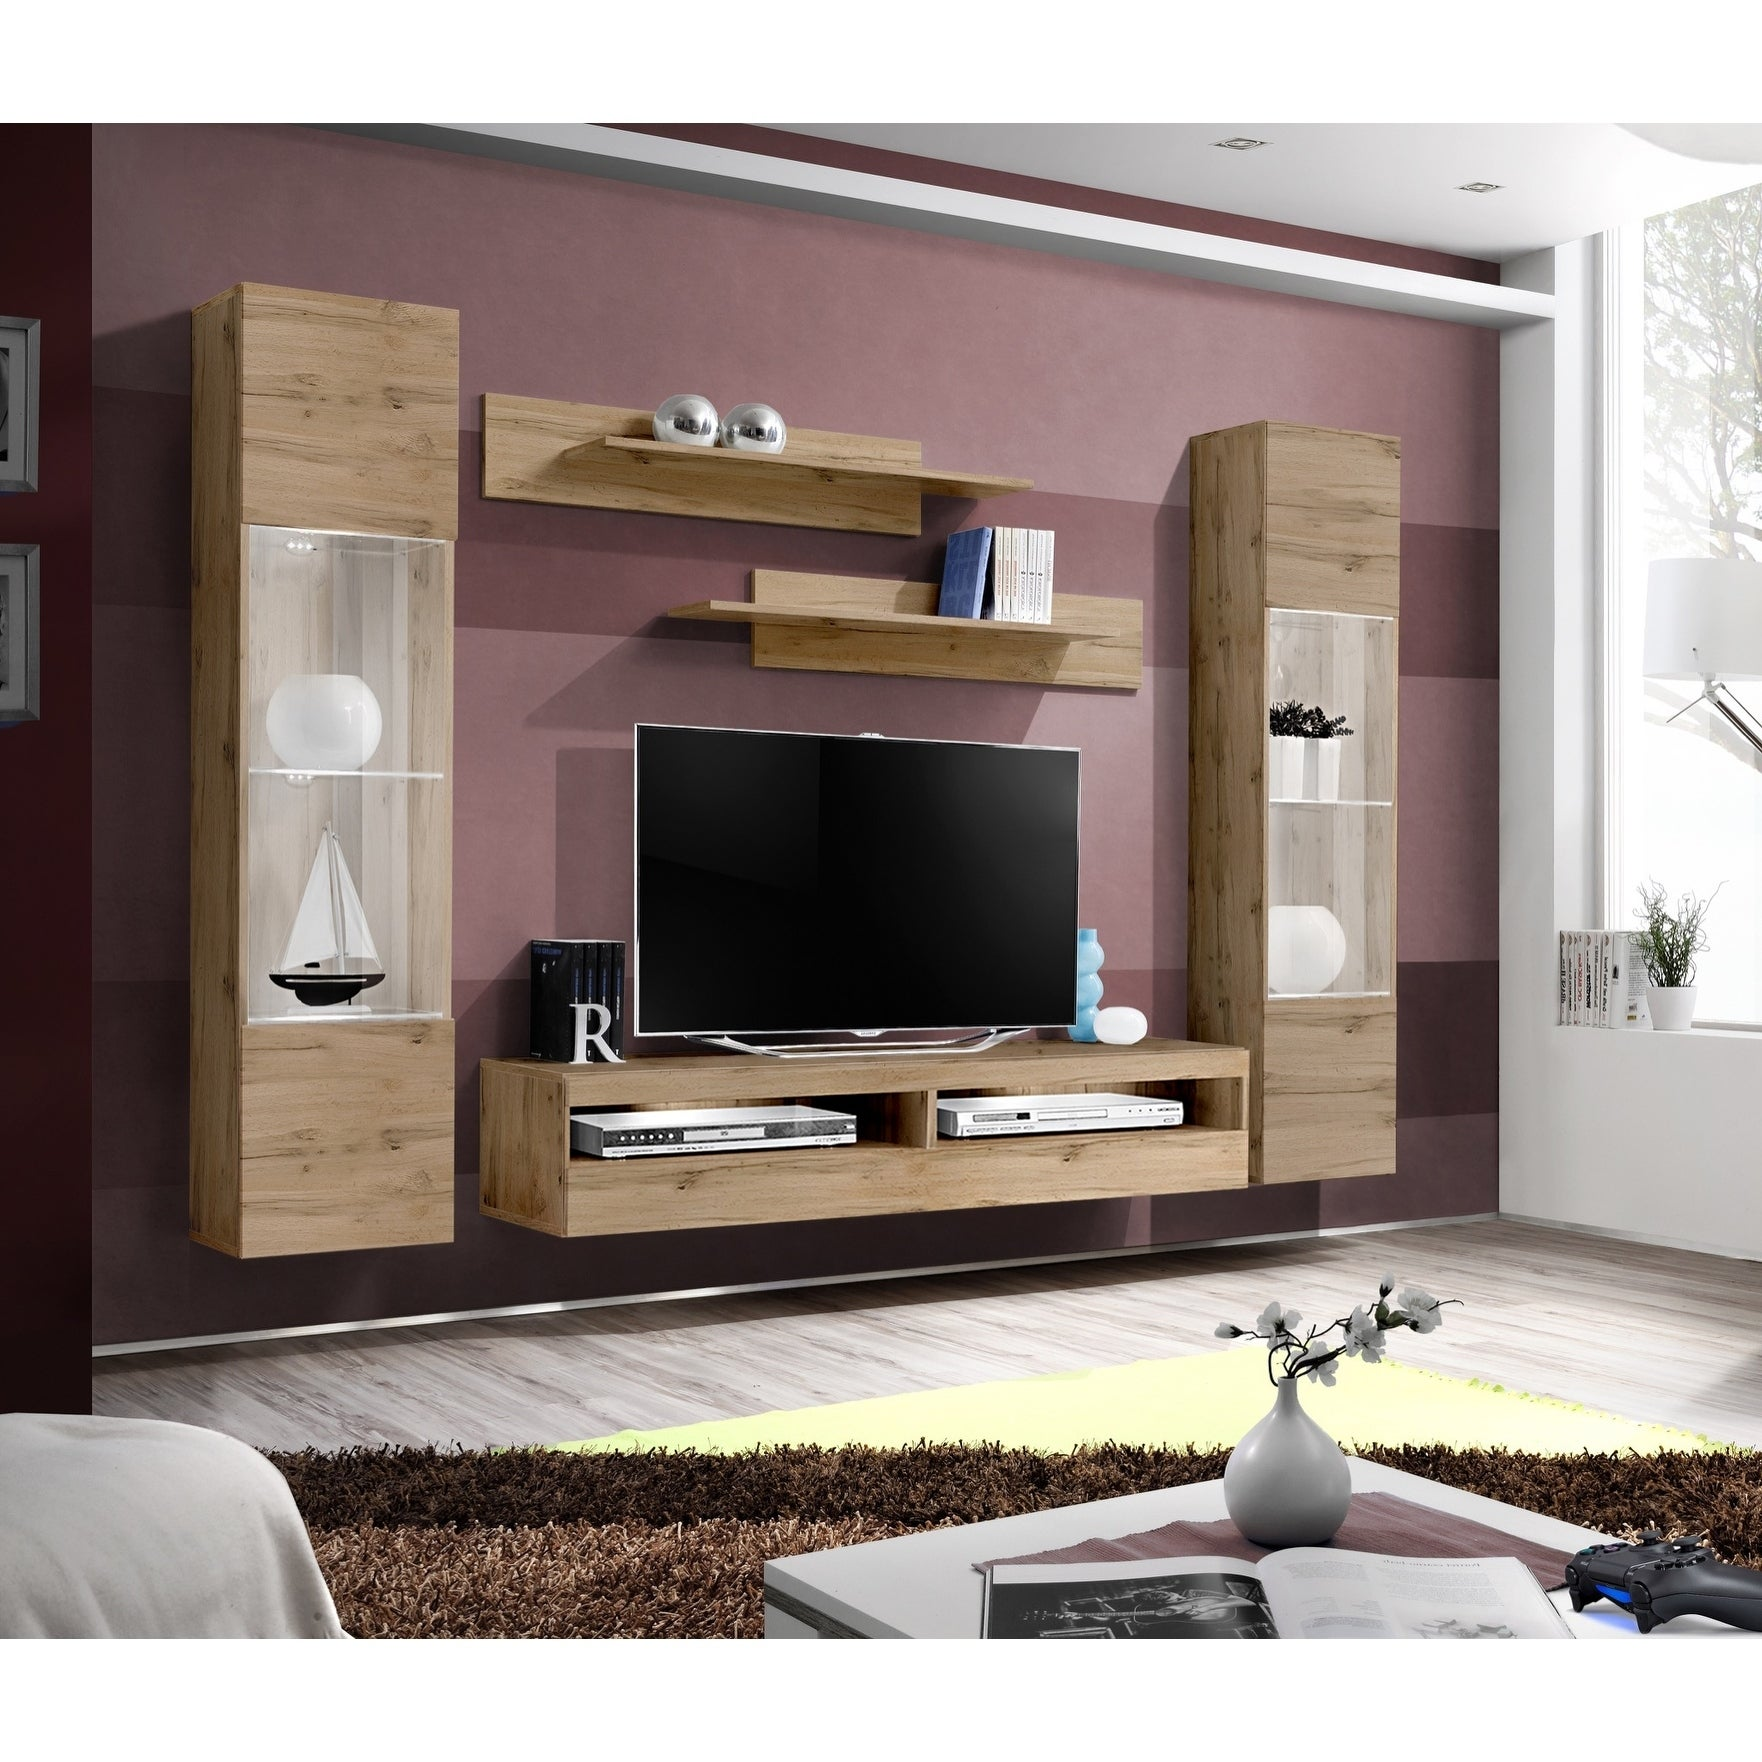 Meble Furniture /& Rugs Fly I2 33TV Wall Mounted Floating Modern Entertainment Center